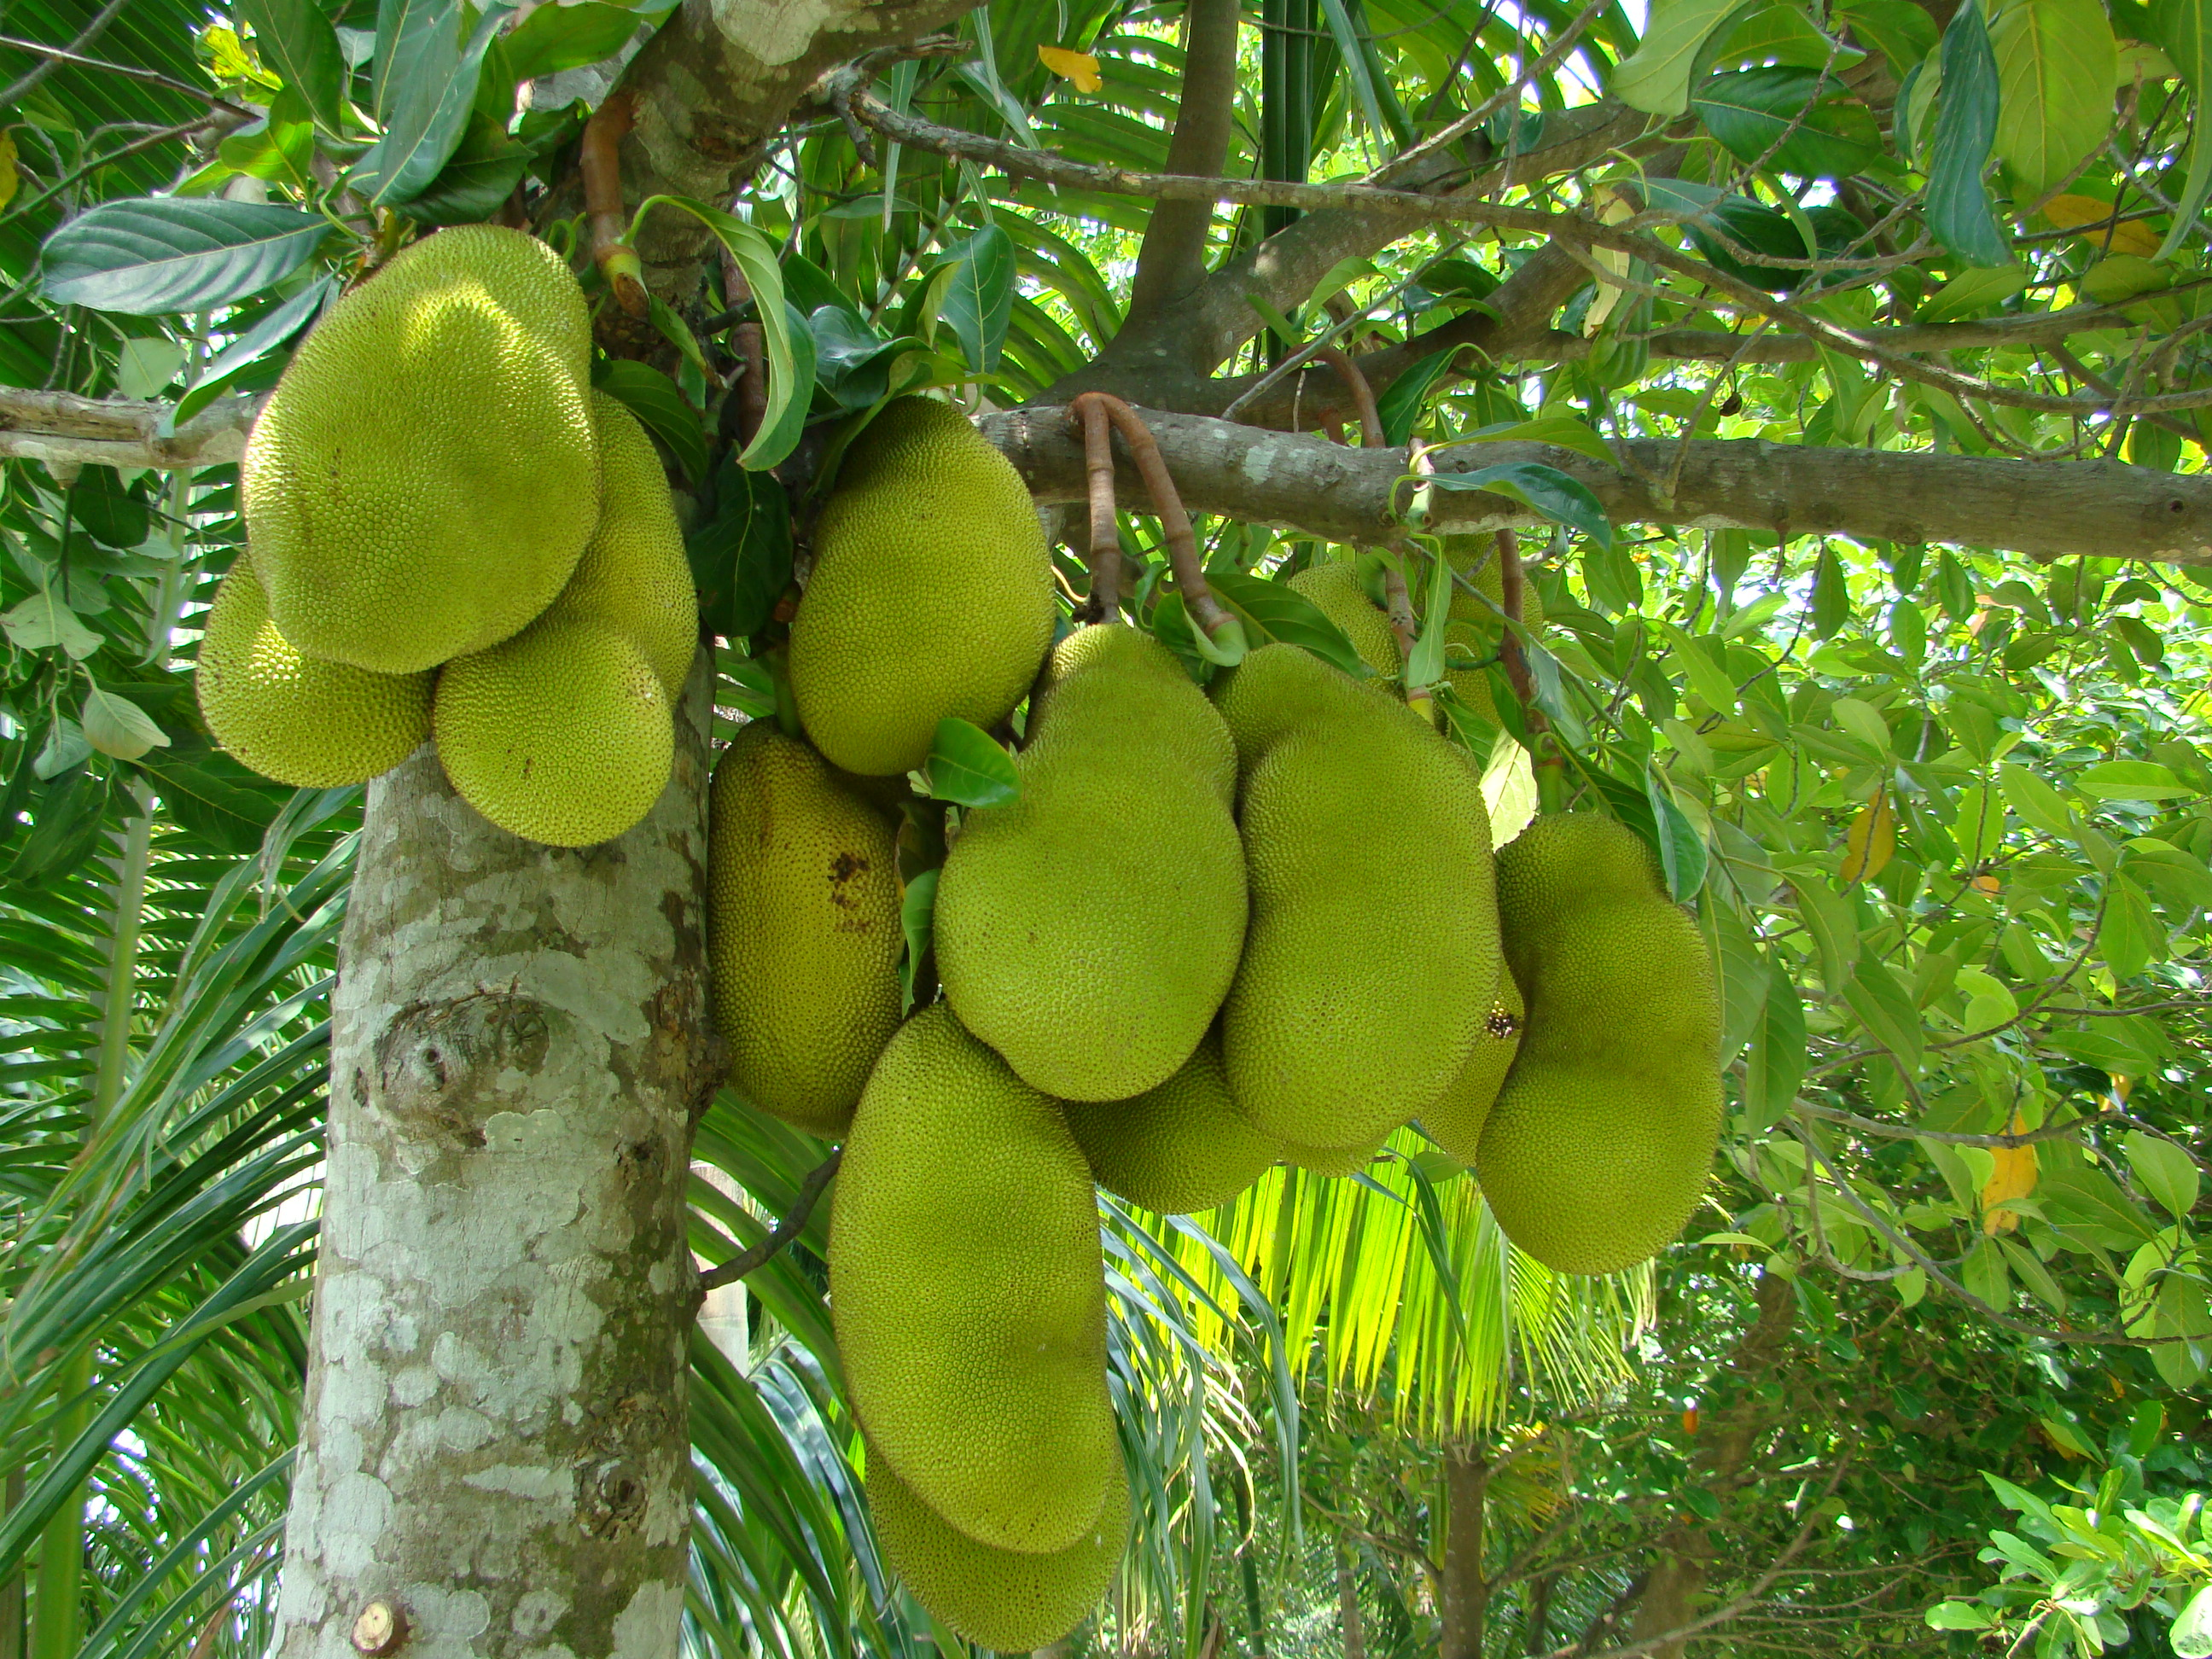 Jack fruits in Mekong delta